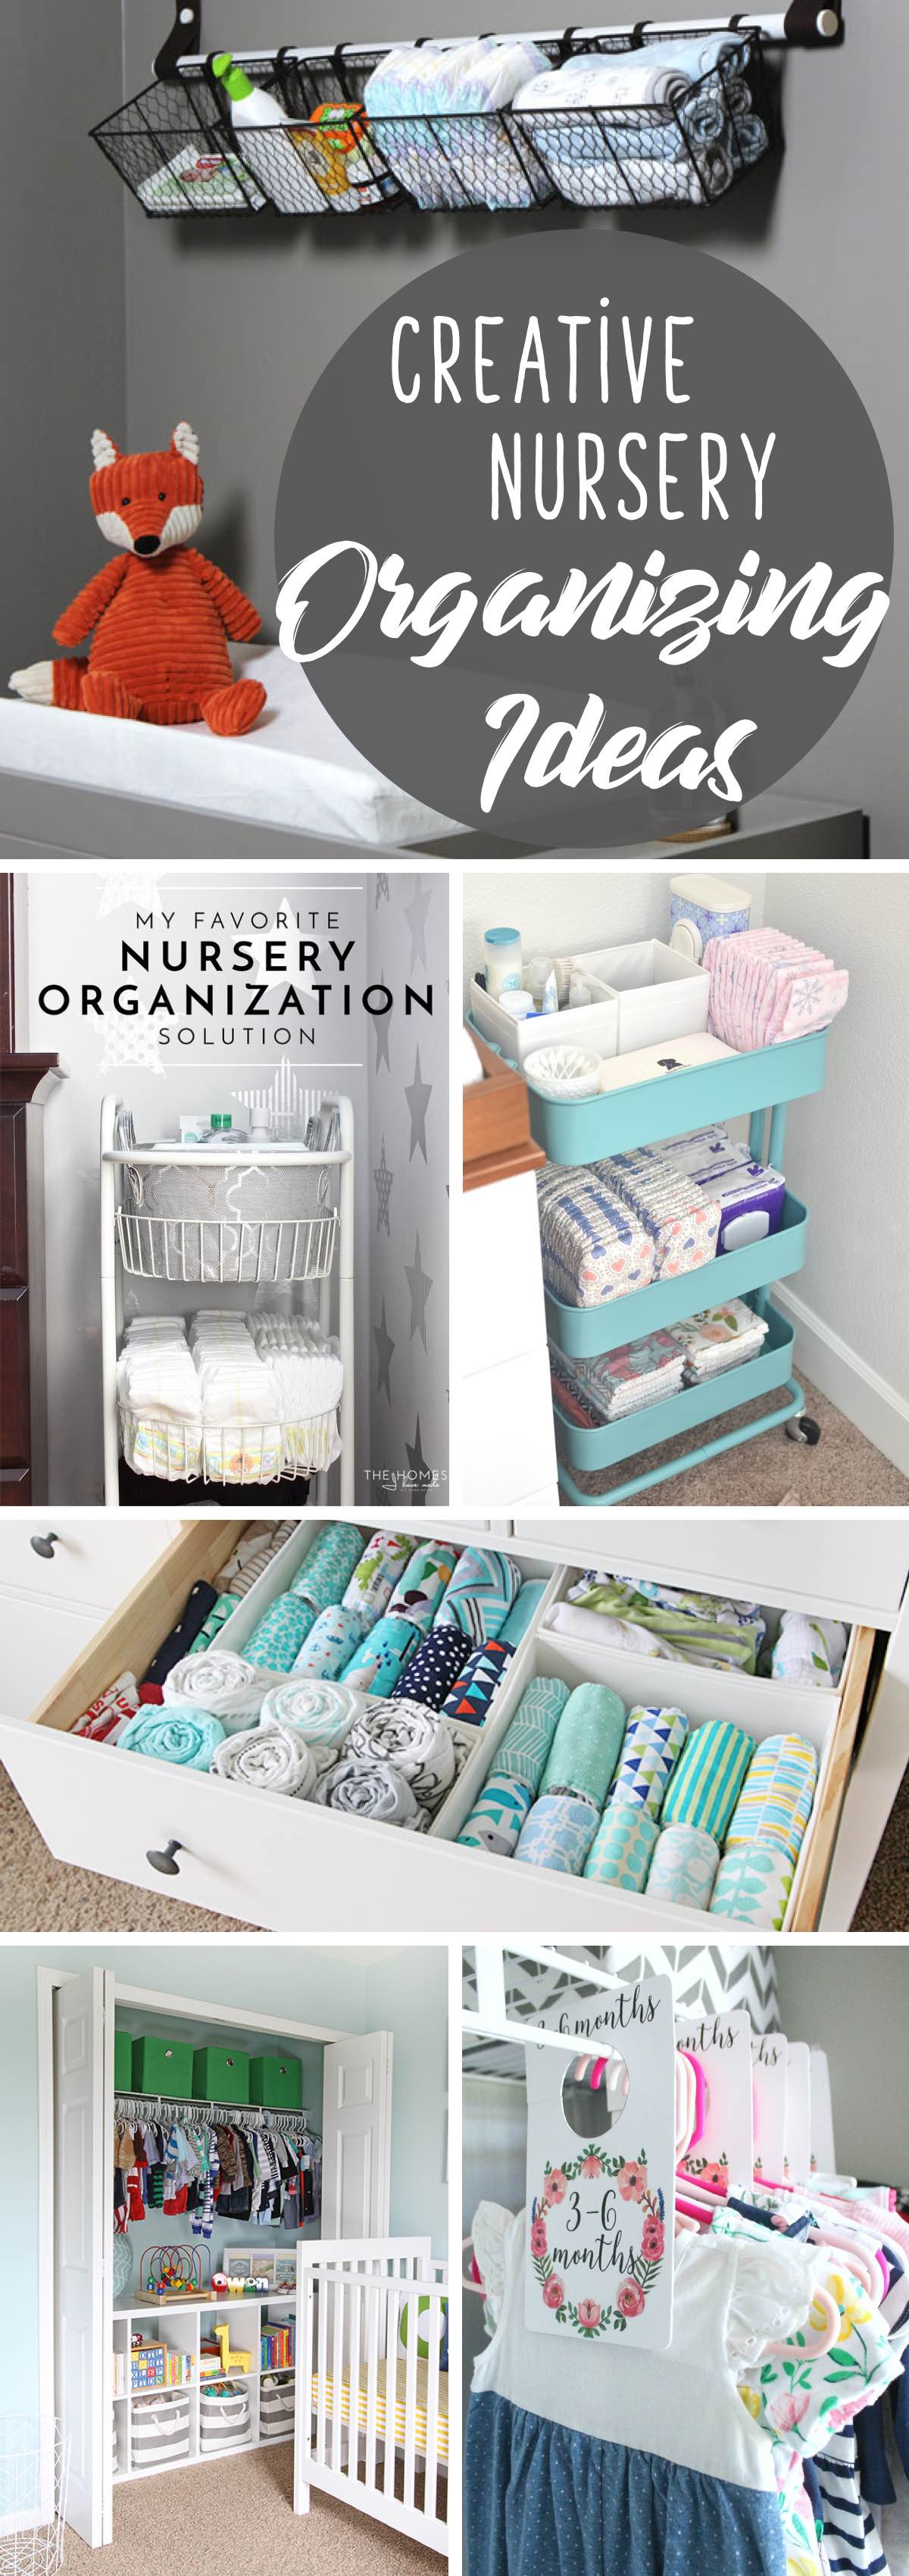 15 Creative Nursery Organizing Ideas Making The Baby Room Look Beautiful